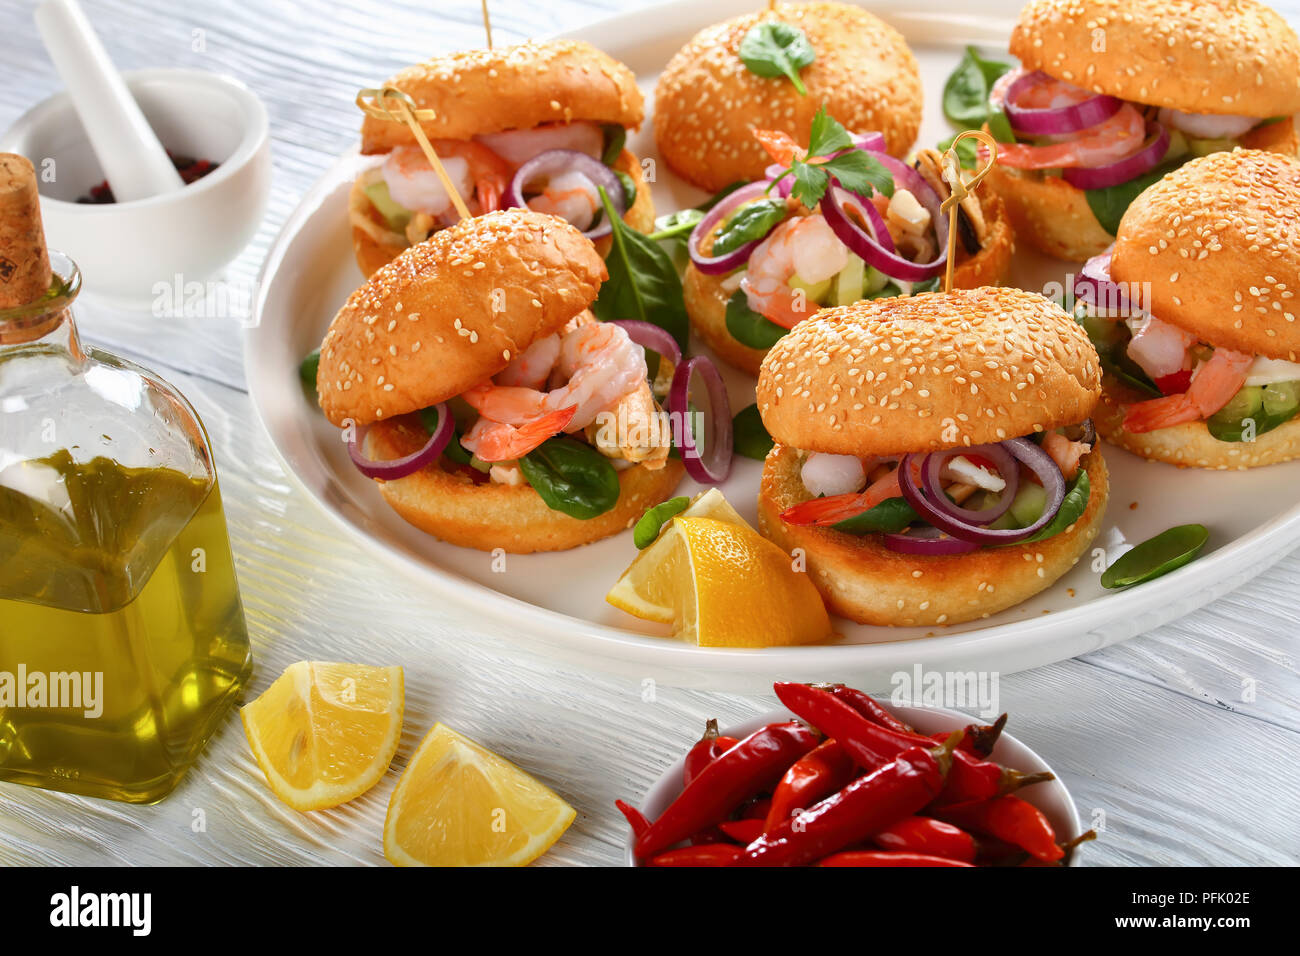 grilled juicy burgers pinned with bamboo skewers or pinchos with seafood - shrimps, mussels, squid strips, red onion and spinach on white dish, spain  - Stock Image